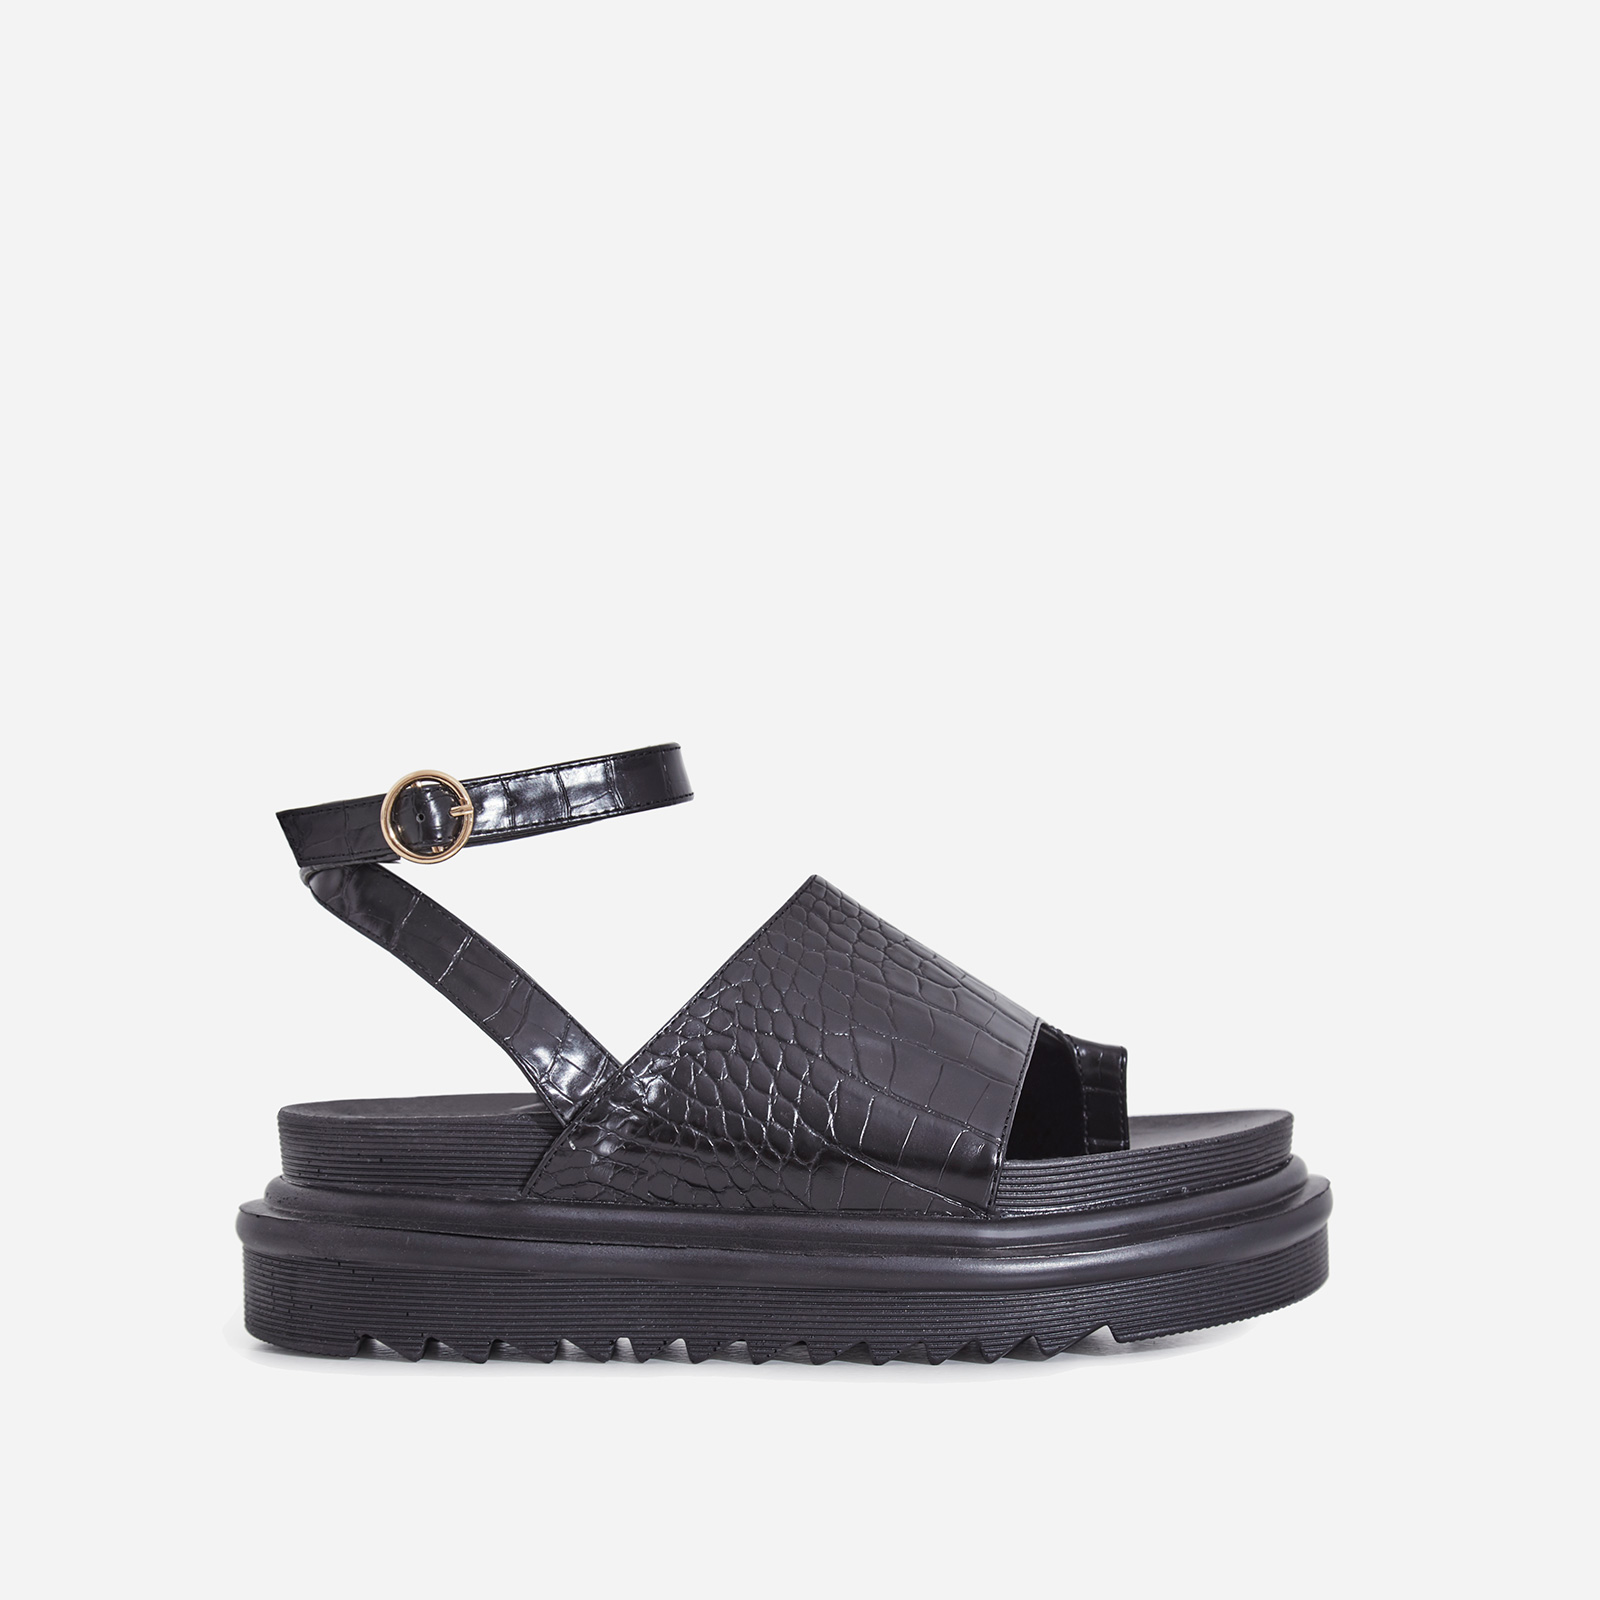 Ruth Chunky Sole Sandal In Black Croc Print Faux Leather